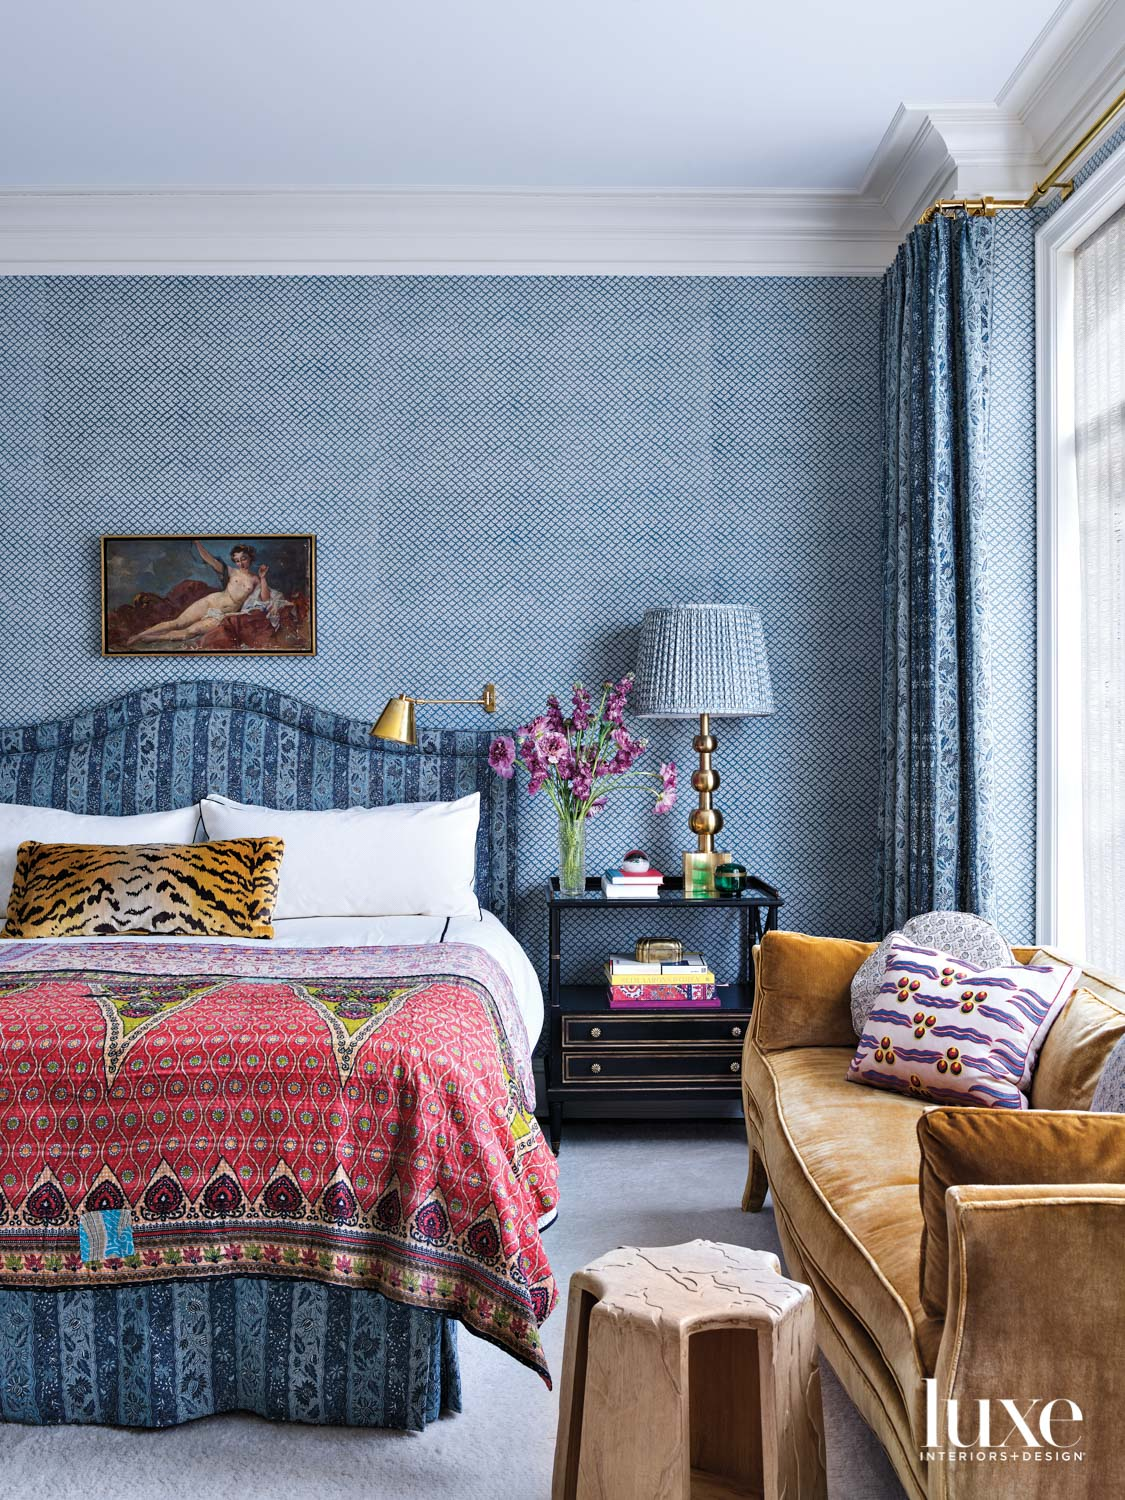 A bedroom with blue patterned...